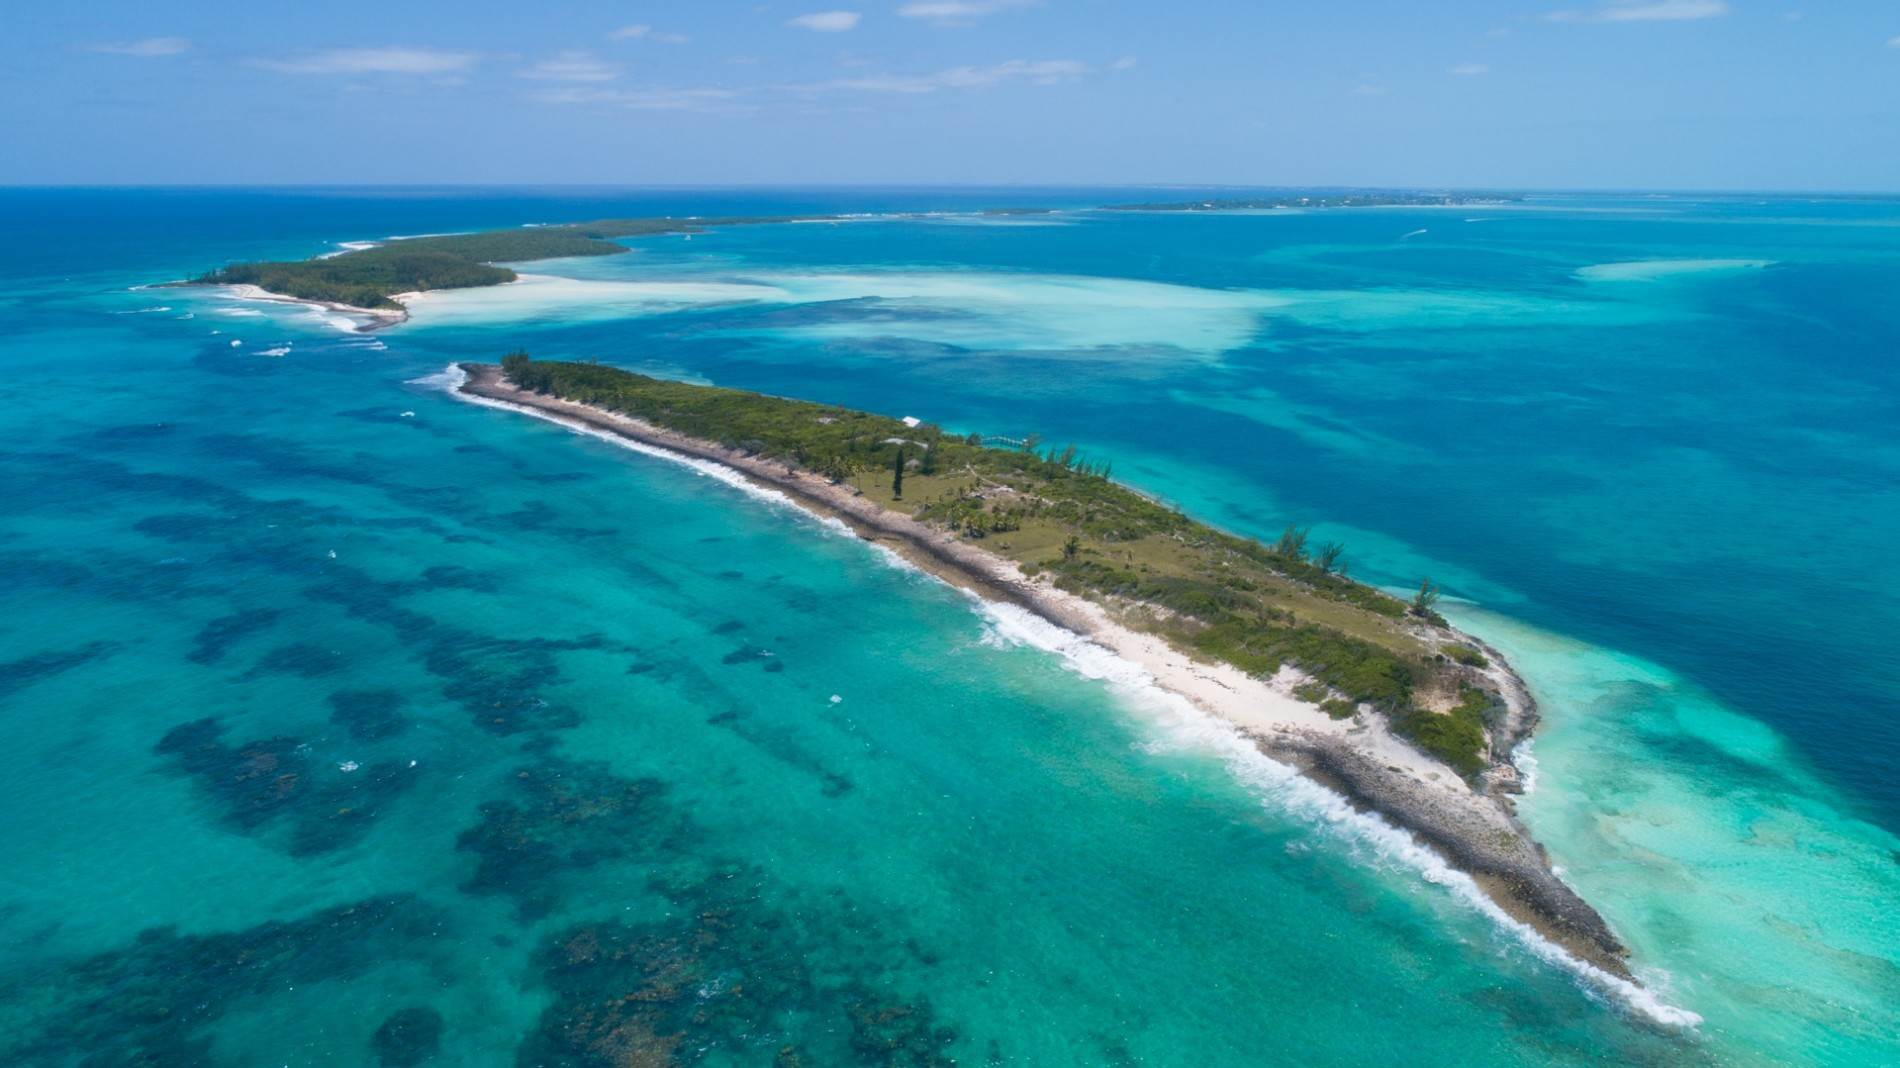 Private Islands for Sale at Pierre Island, A Perfect Private Retreat Island Near Harbour Island - MLS 40806 Harbour Island, Eleuthera, Bahamas